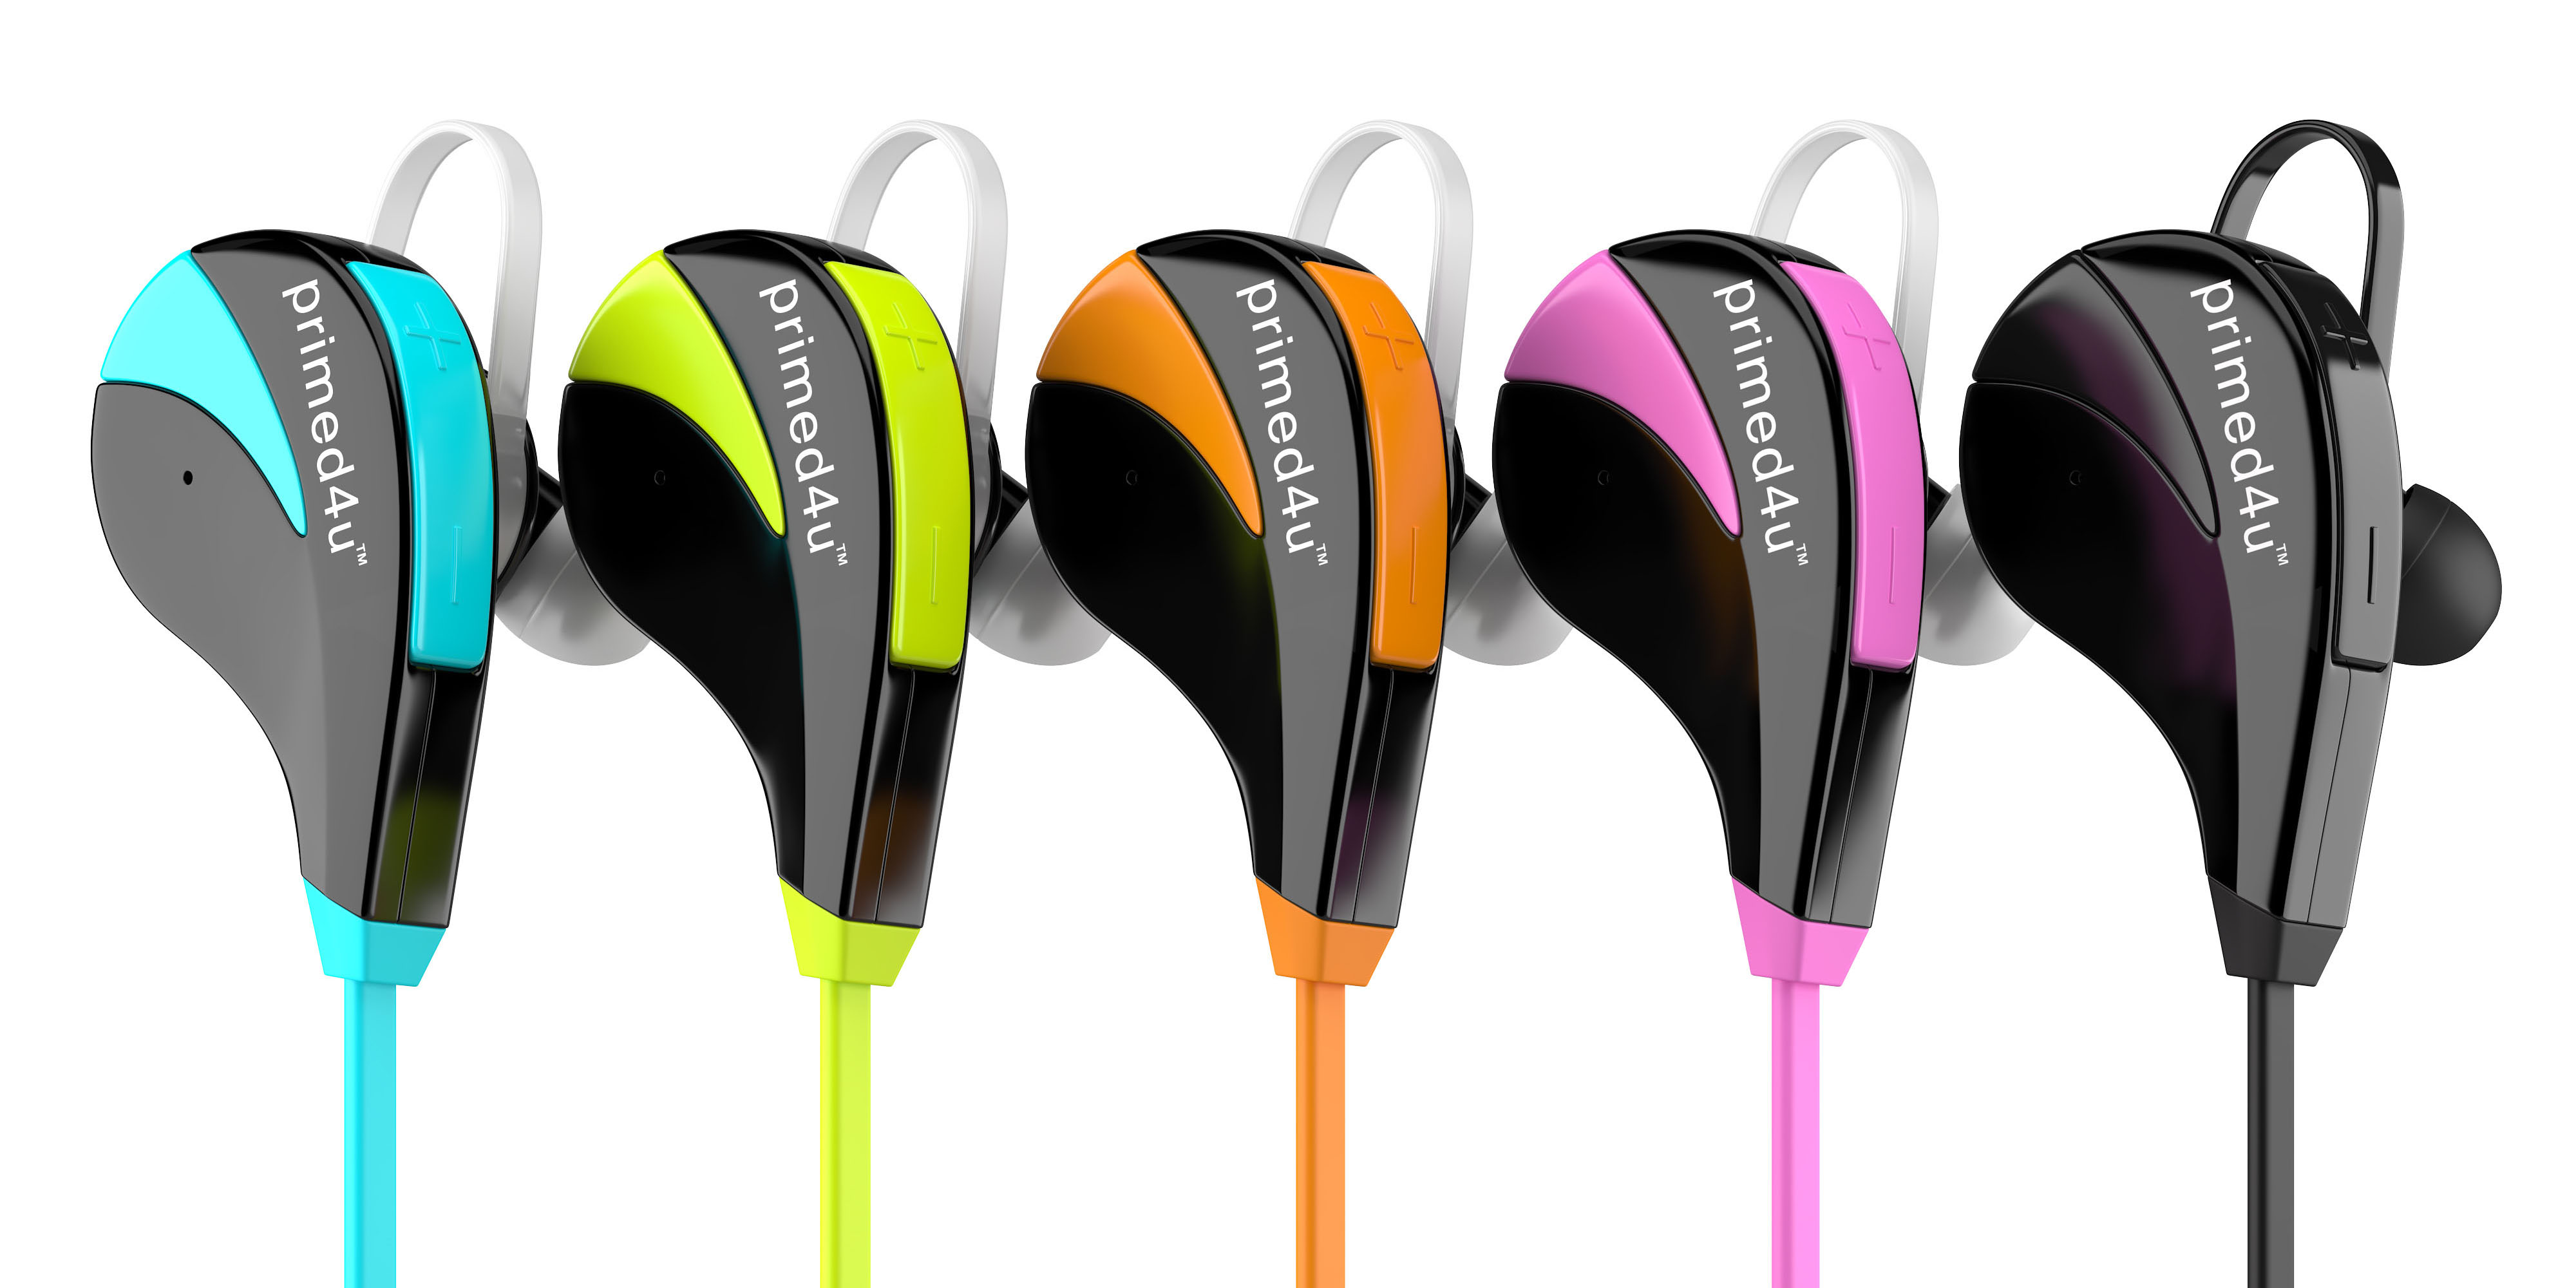 Primed4U headphones lined up in blue, green, orange, purple, and black colors